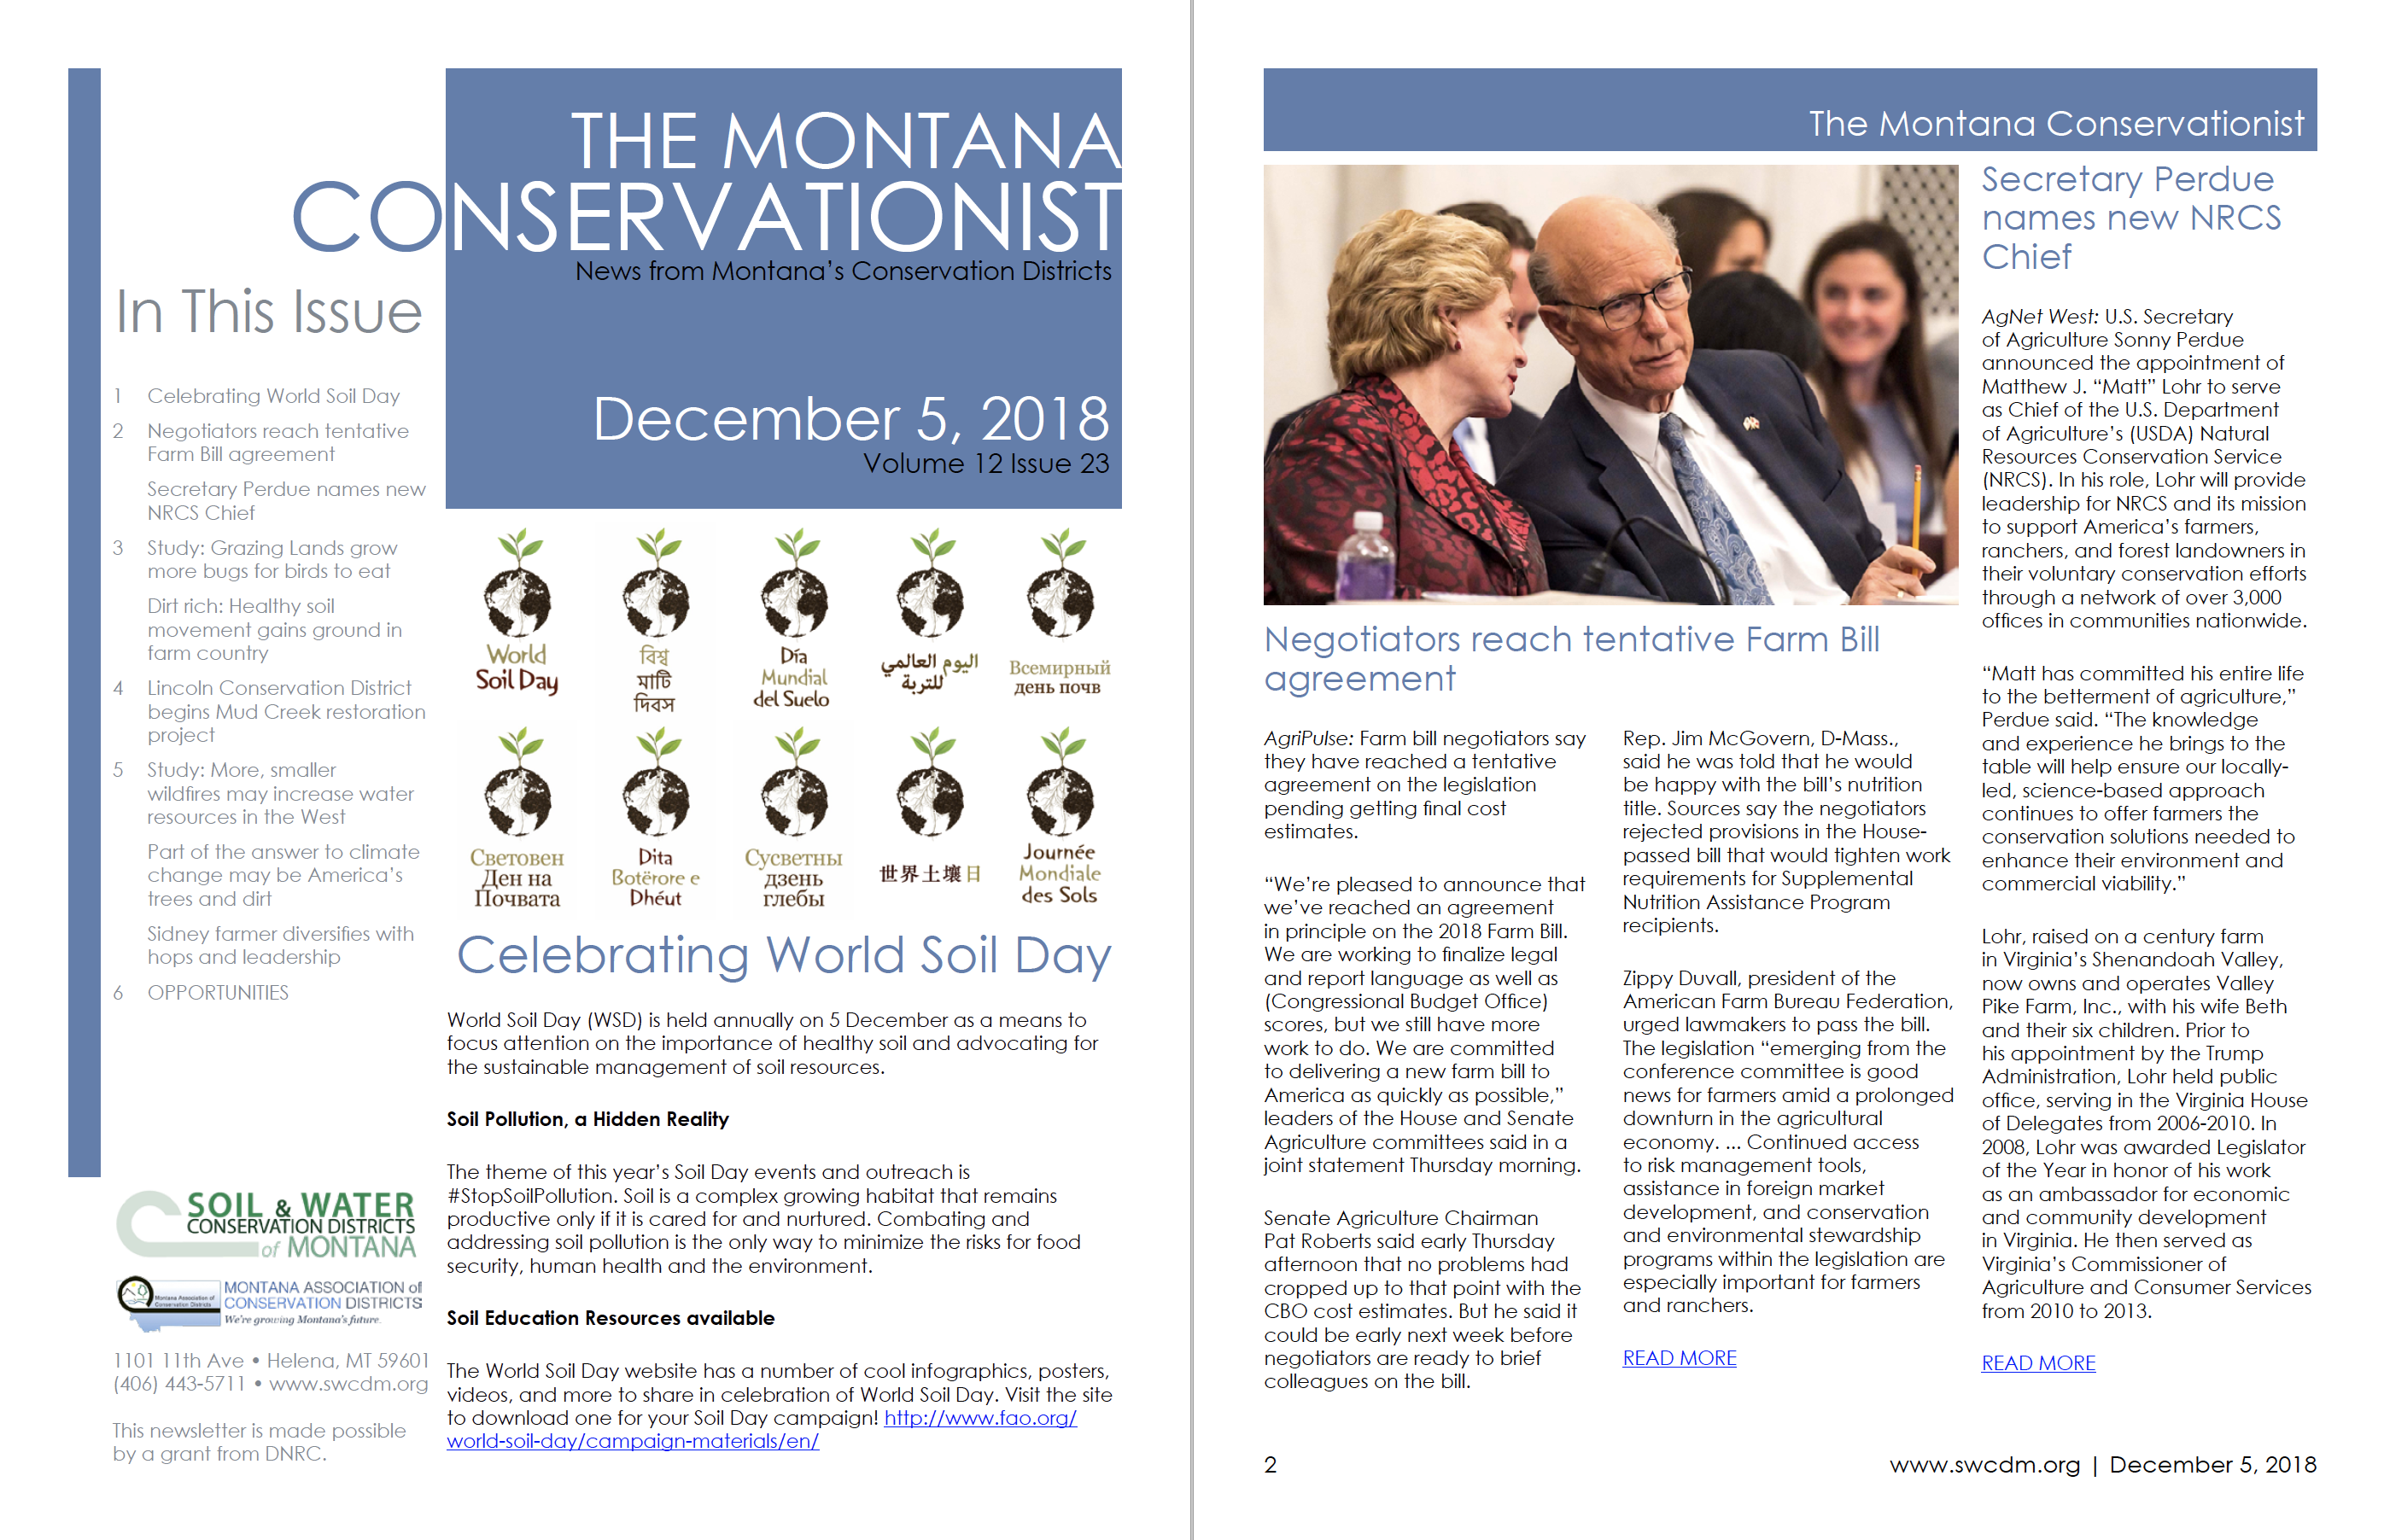 The Montana Conservationist December 5